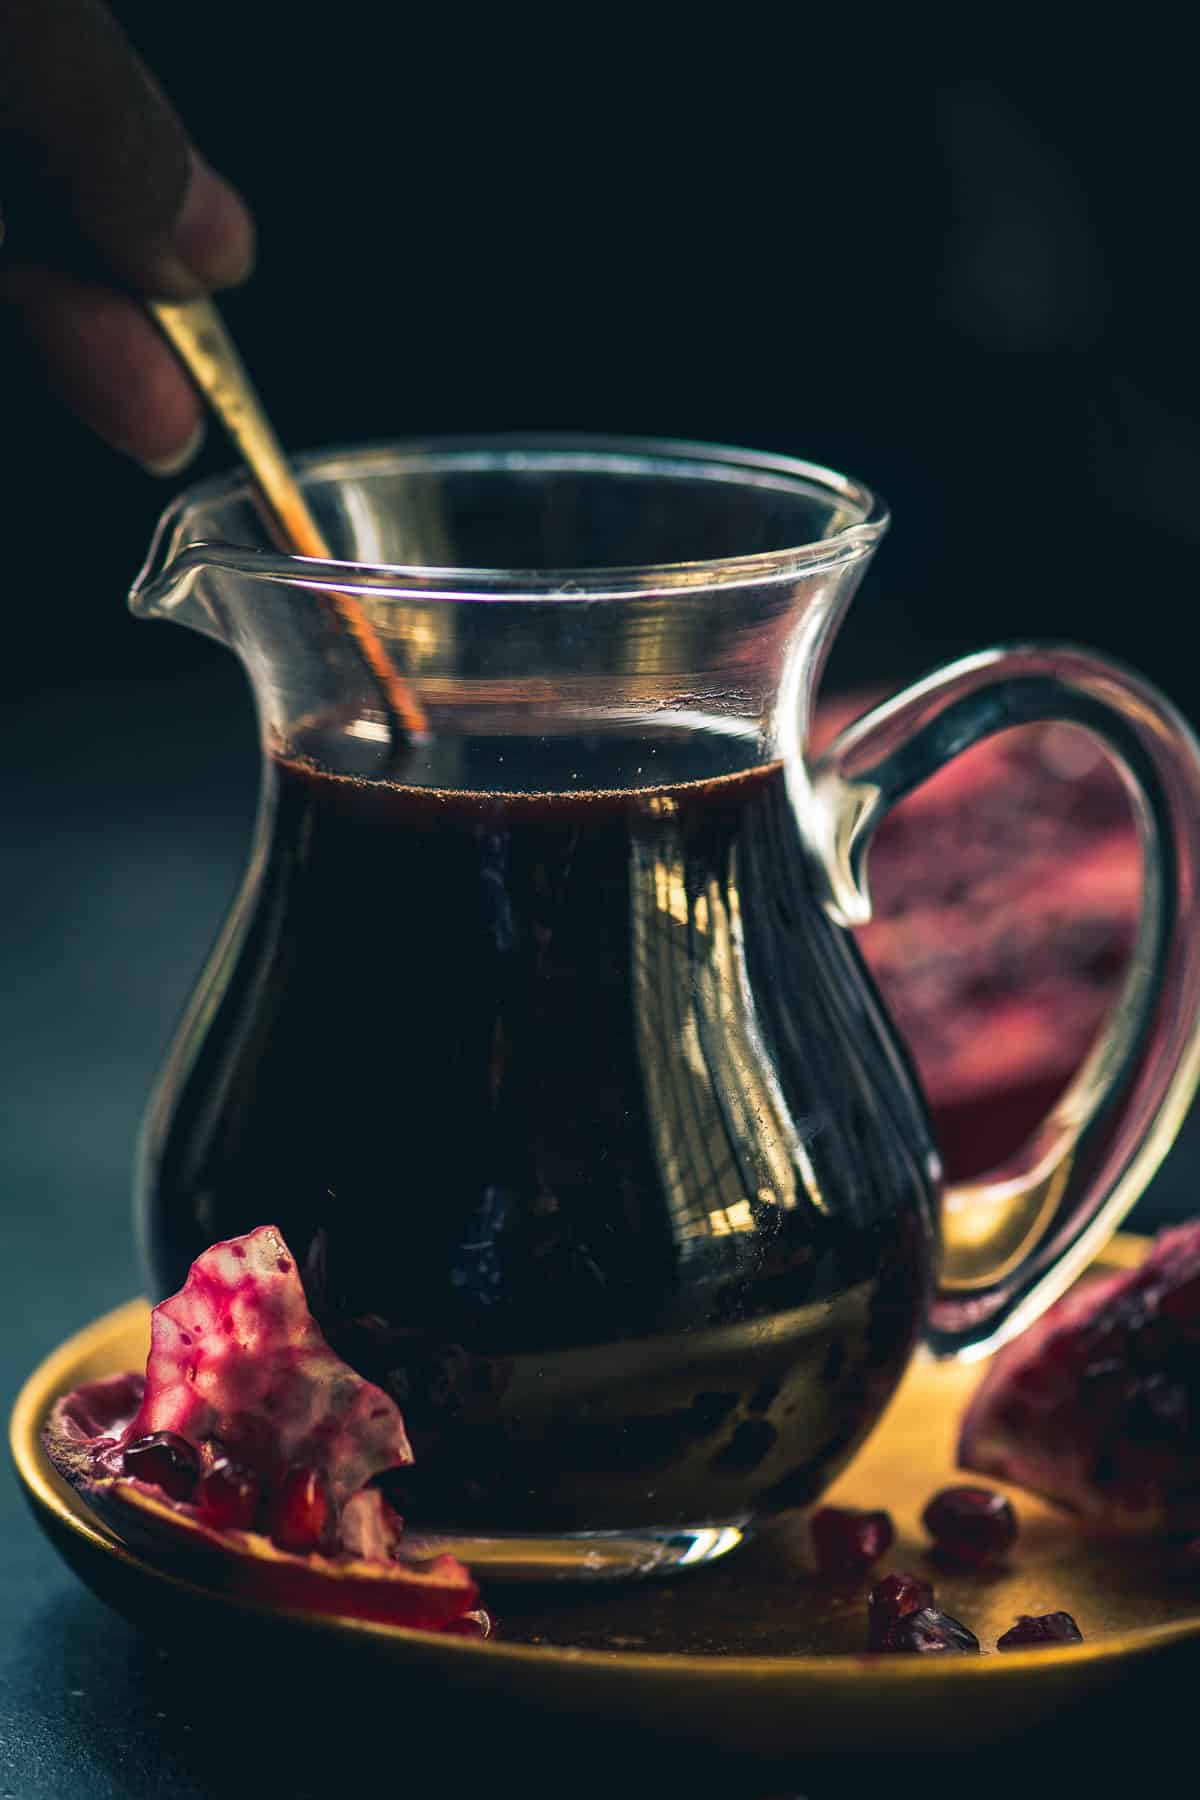 Pomegranate molasses served in a glass jar.